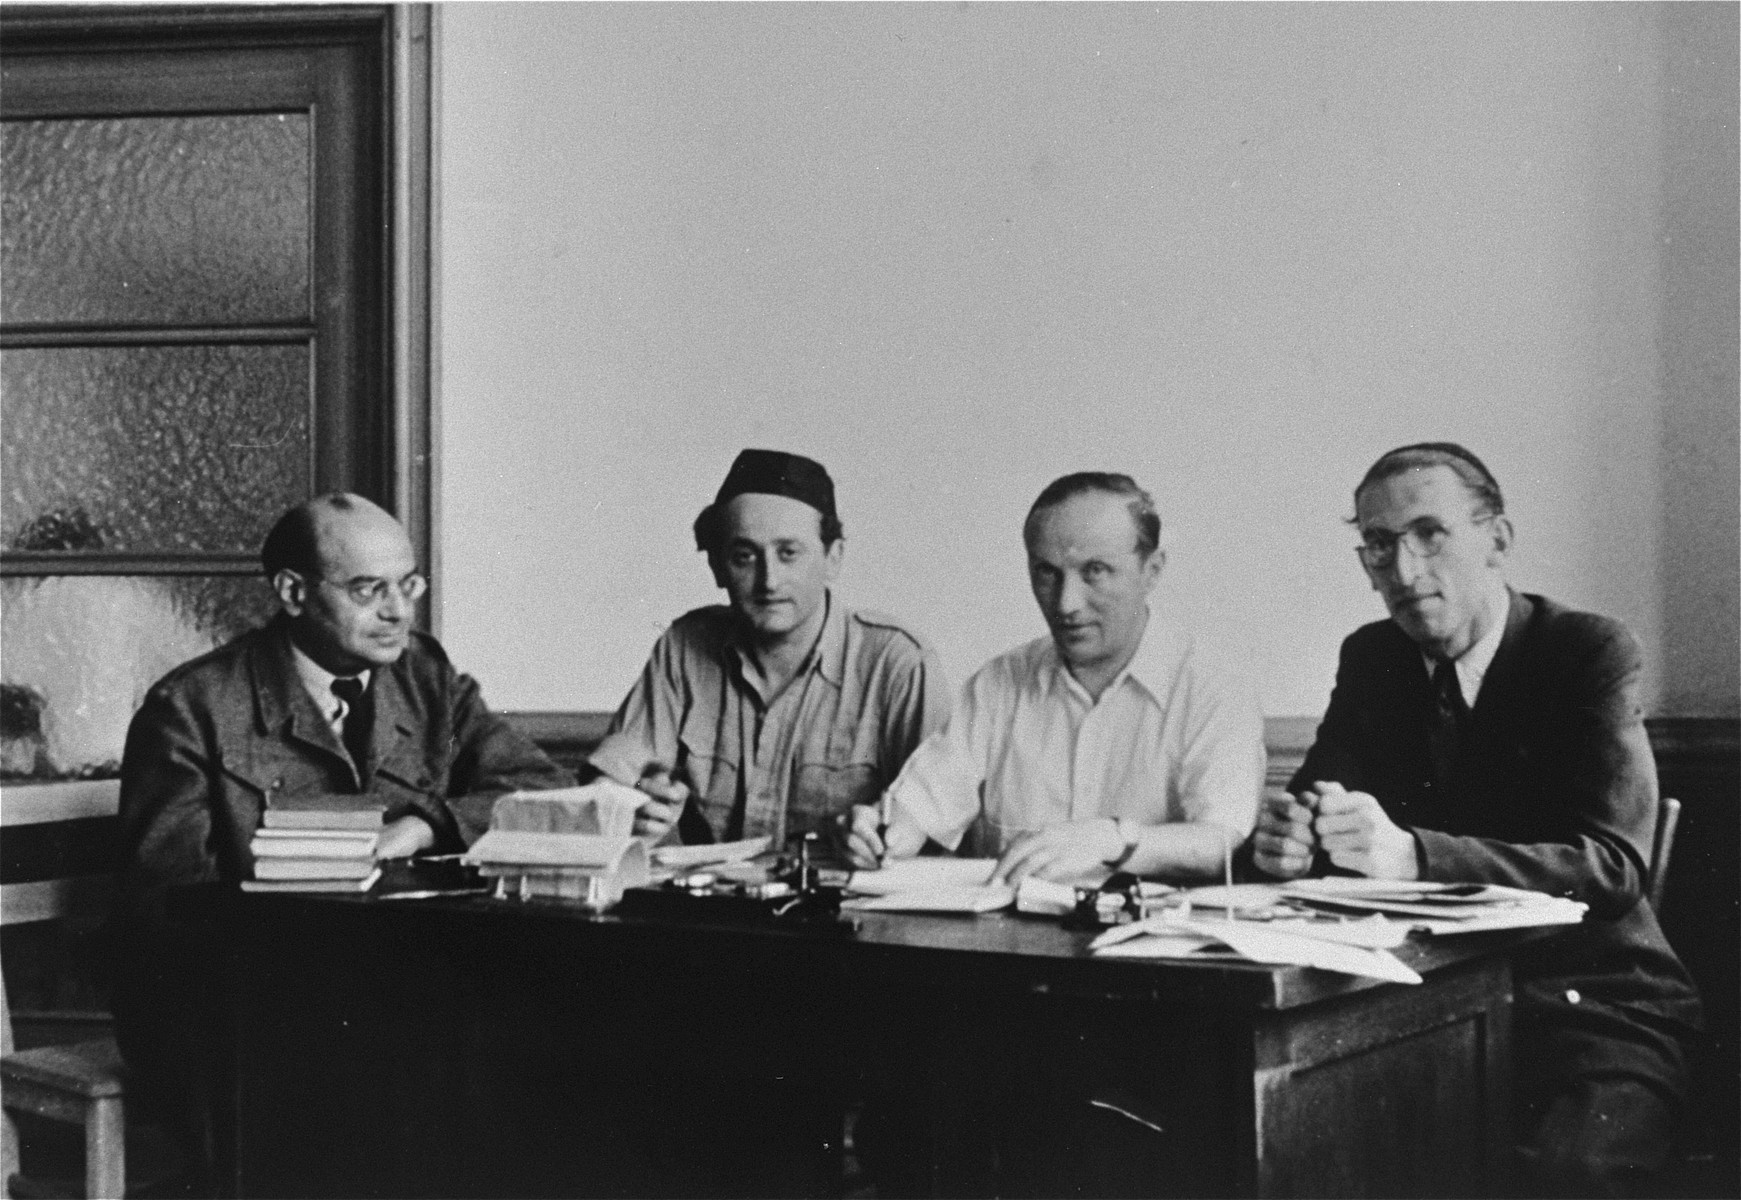 Four members of the Central Jewish Committee for the British Zone of Germany are seated in an office.  Pictured from left to right are: unknown; Rabbi Zvi Helfgott (later Zvi Asaria); Josef Rosensaft; and Rabbi Joseph Asher.